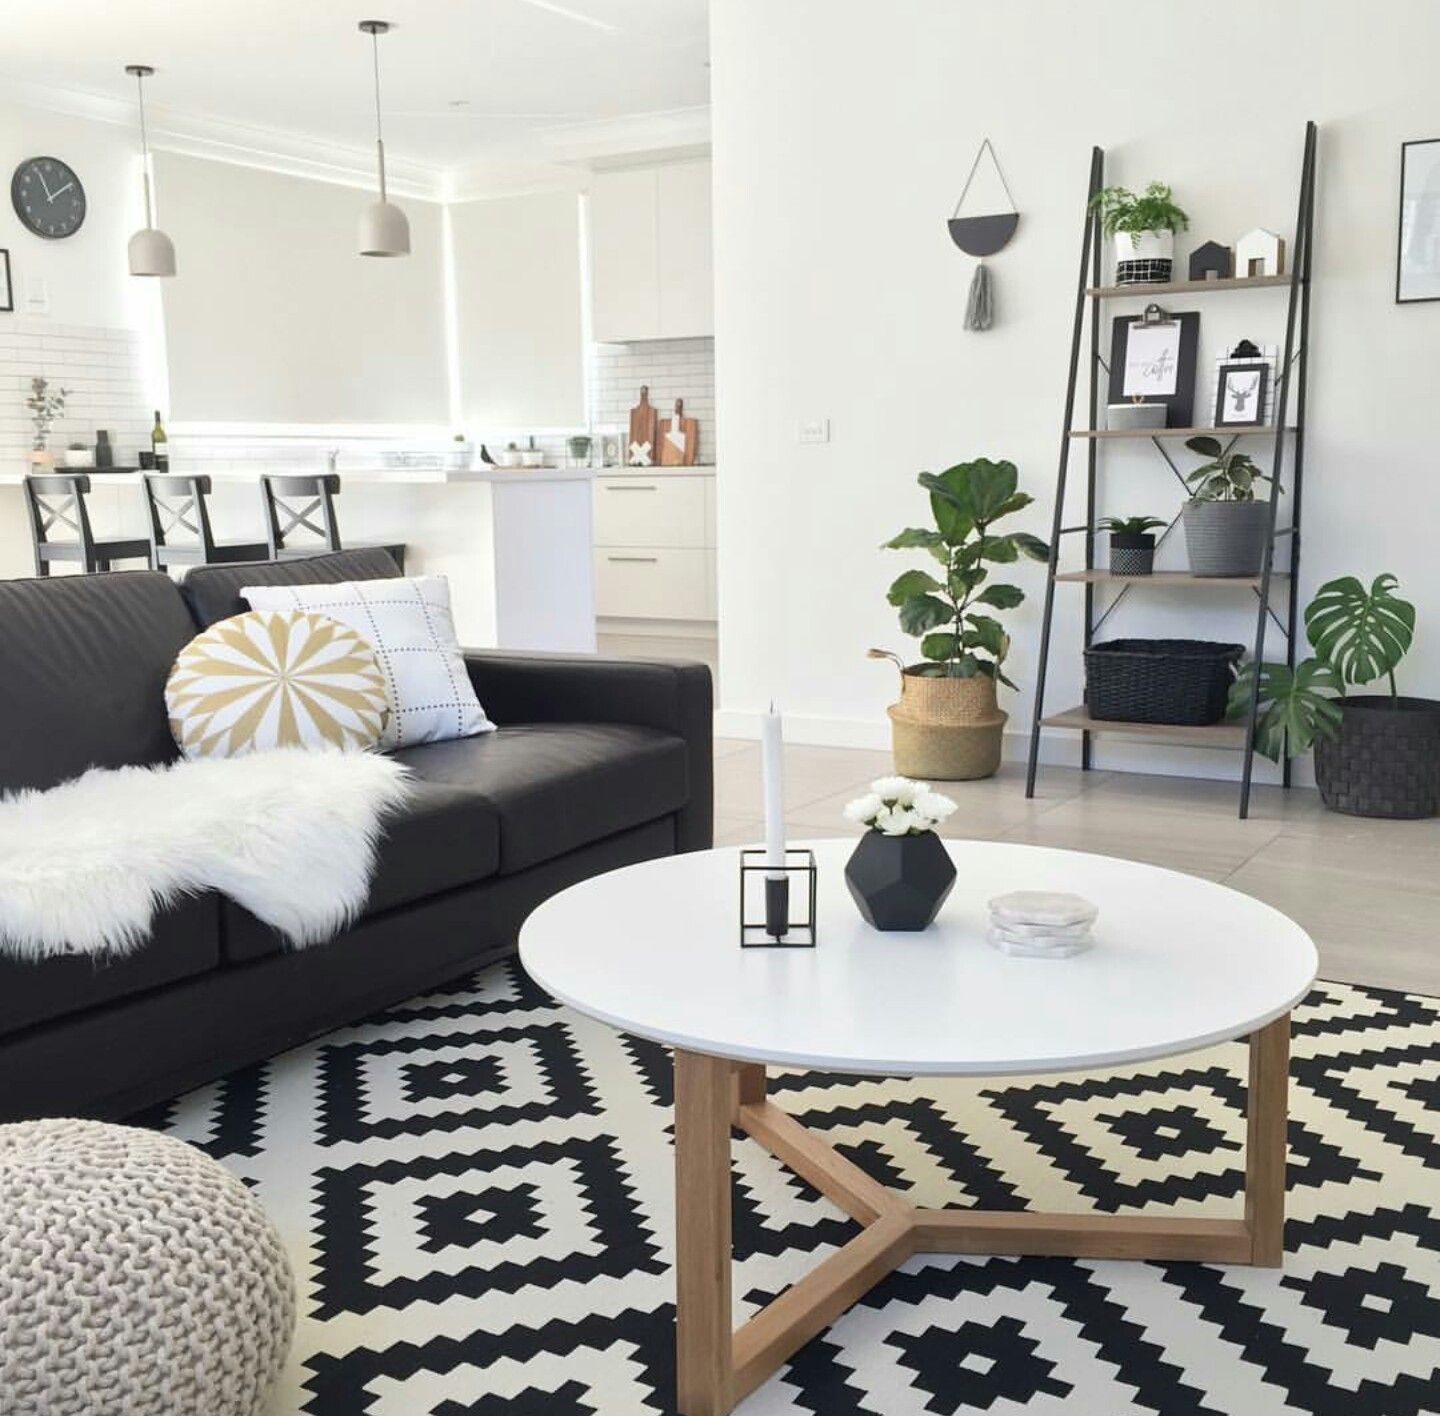 Best Kmart Styling Https Noahxnw Tumblr Com Post 400 x 300